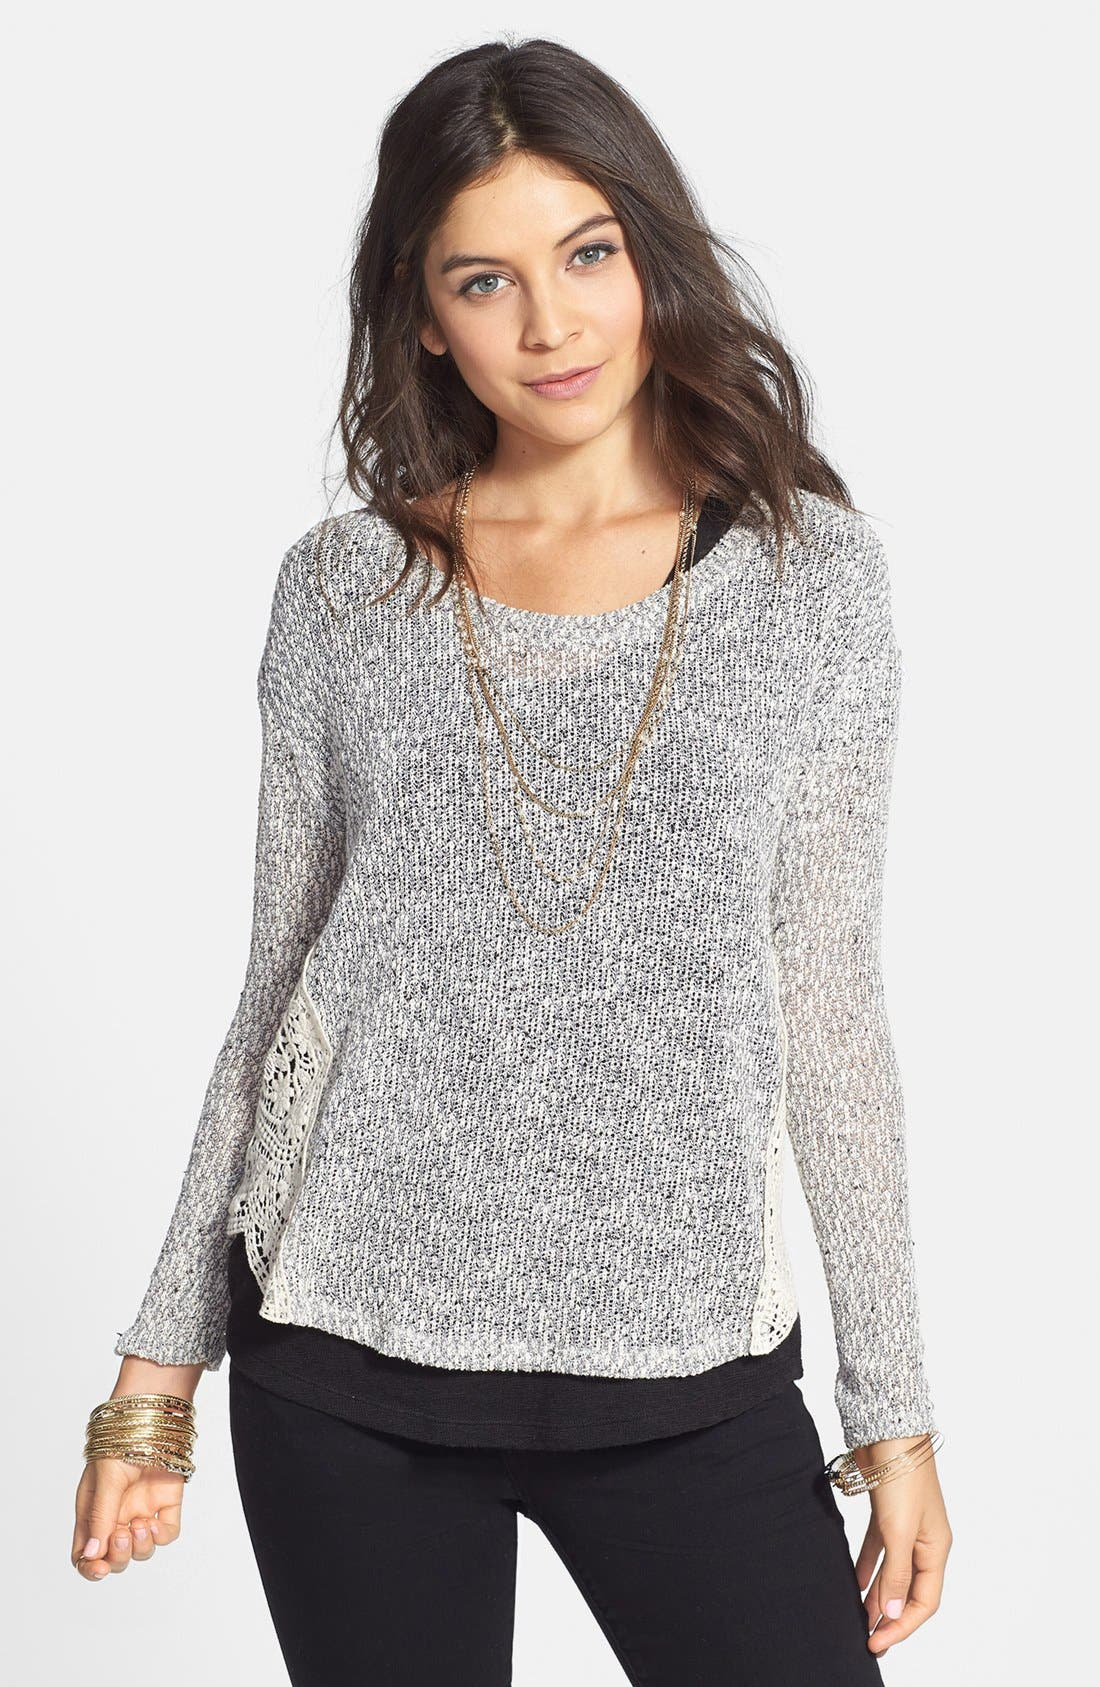 Alternate Image 1 Selected - Lush Crochet Side Marled Sweater (Juniors)